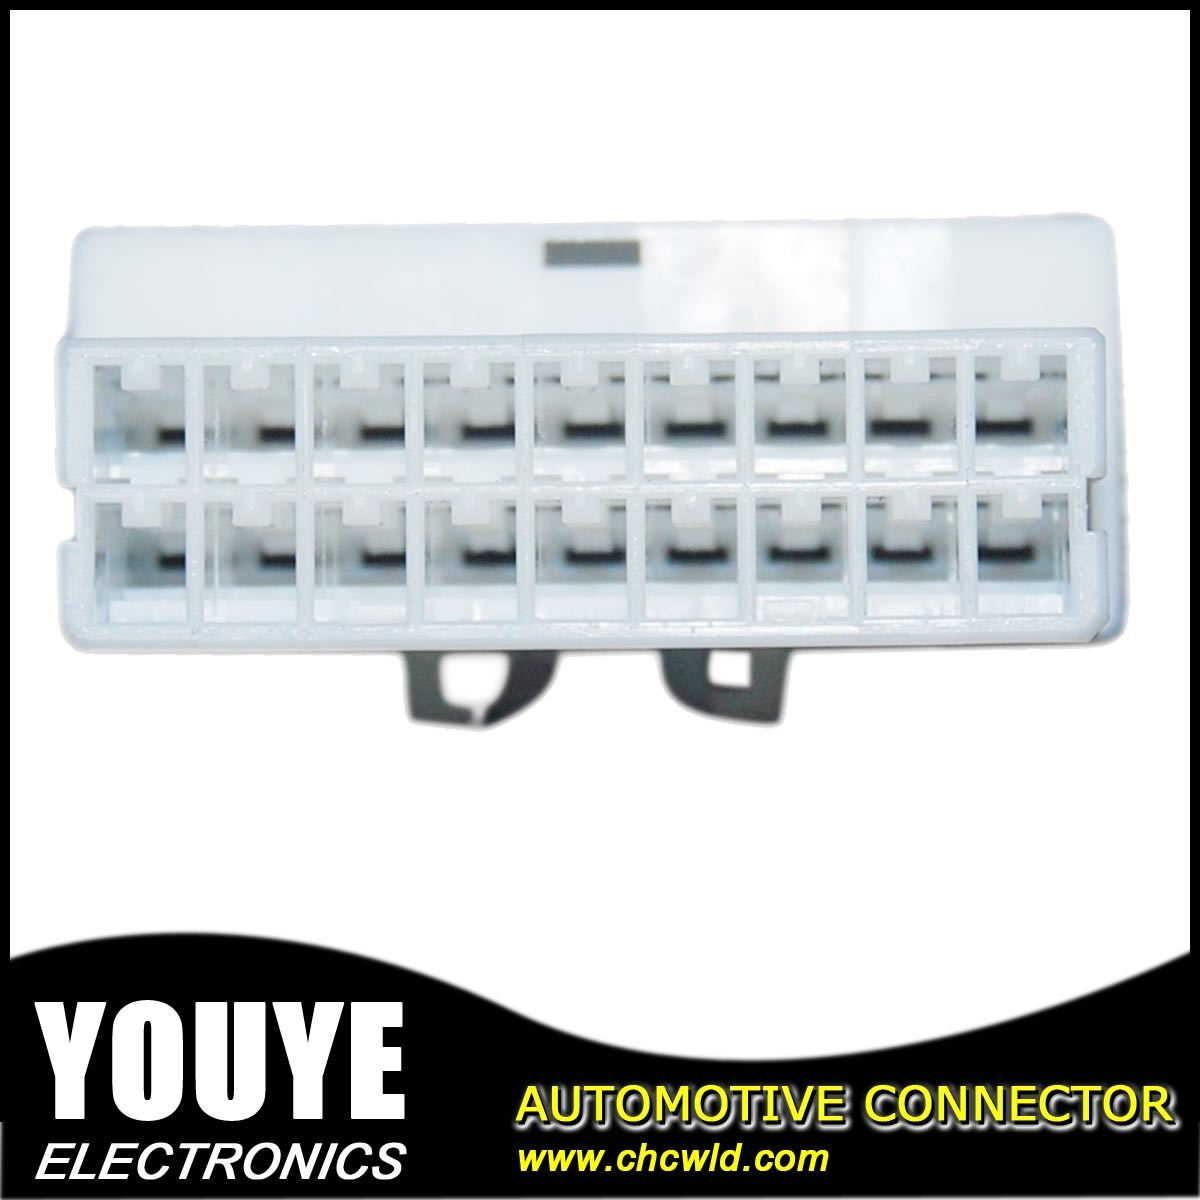 2016 RoHS Oringinal Wire Automotive Connector for Hyundai